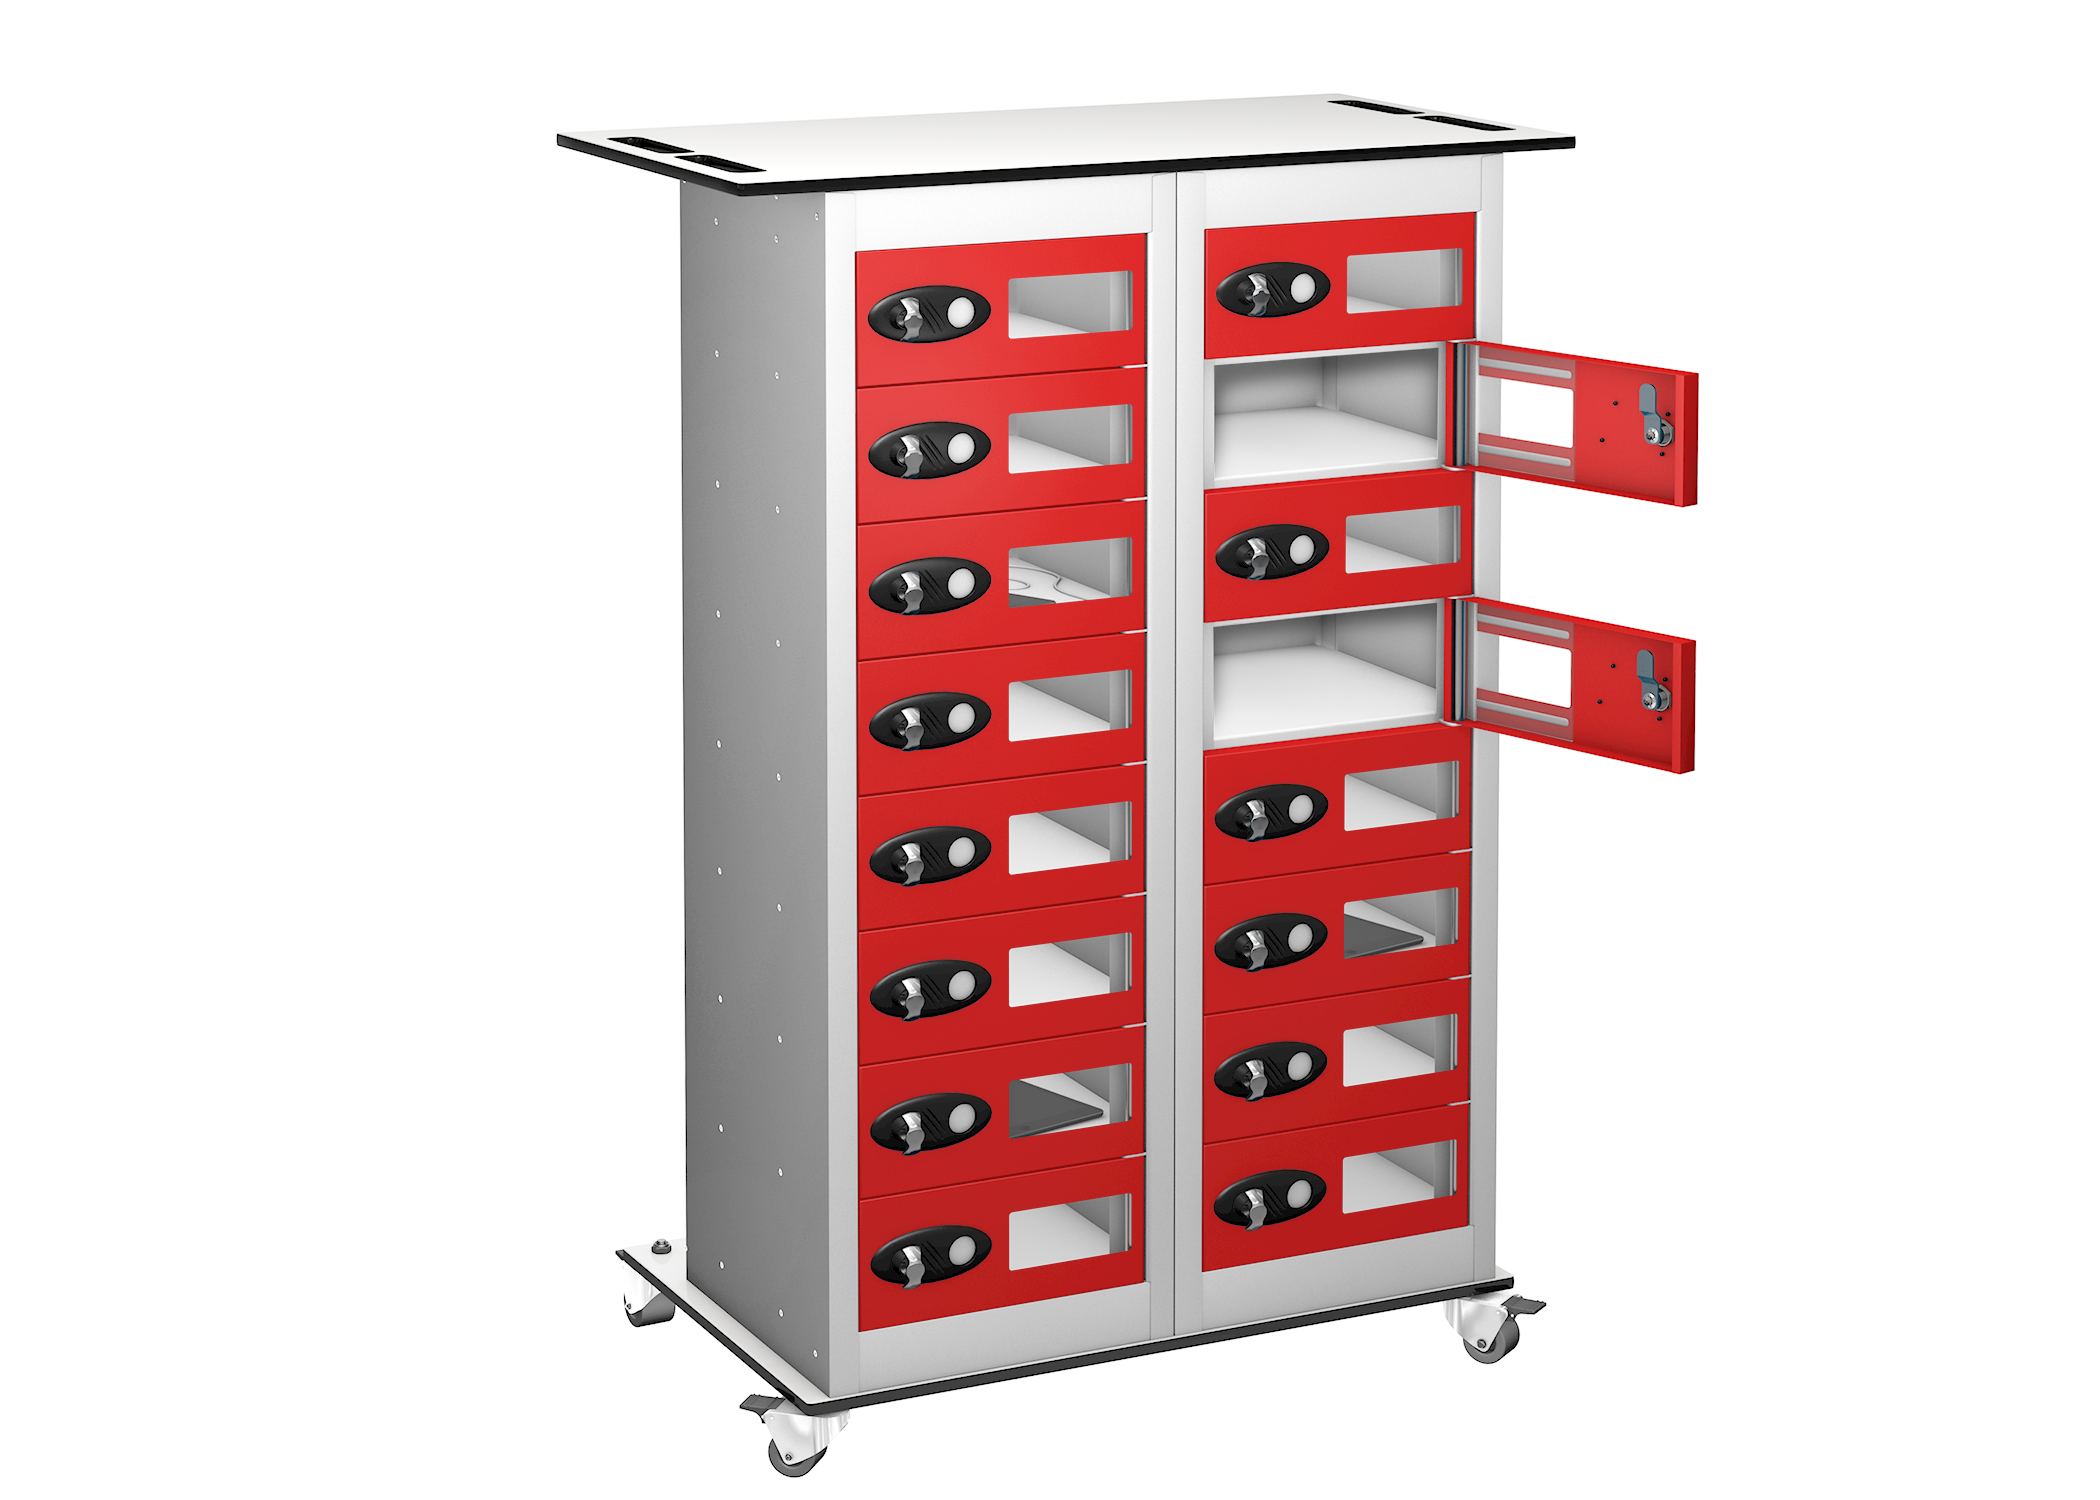 Trolley - VISION PANEL Tablet Storage Locker -16 Compartments - 16 doors (Charging)